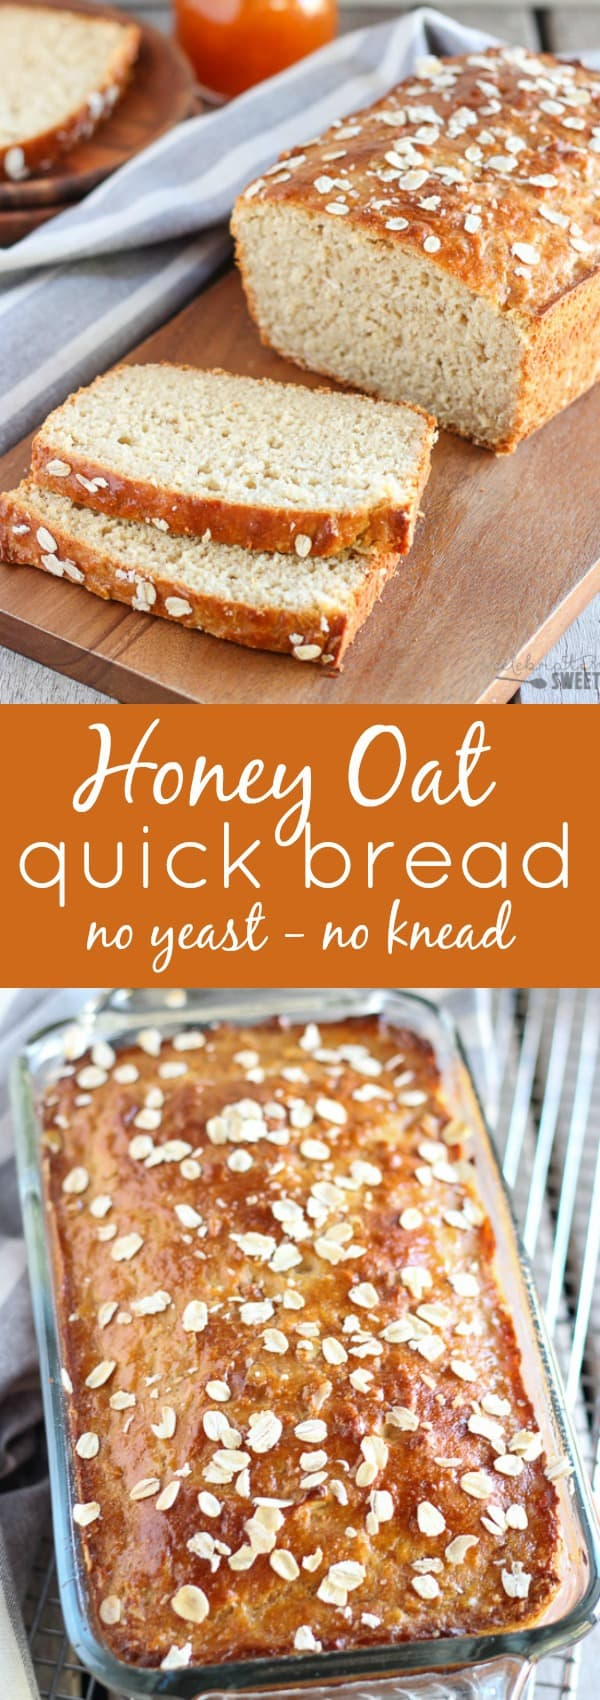 Honey Oat Quick Bread - No yeast, no knead, ready in an hour!